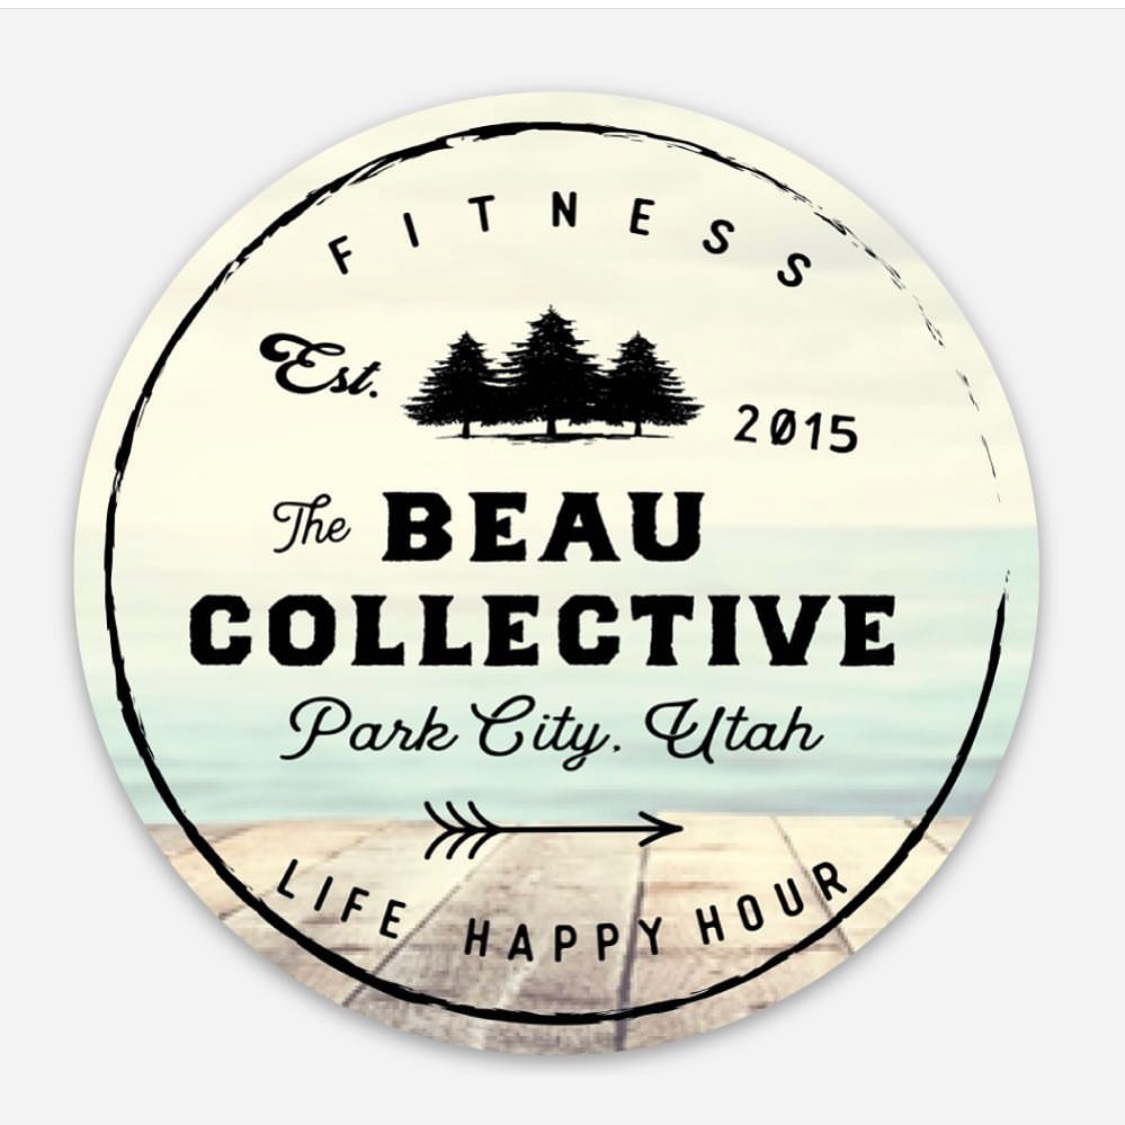 The Beau Collective    We are a town filled with passionate athletes of all types, styles and abilities. beau co is an inspired group of very cool people who will give you a great workout, a couple laughs and leave you wanting more.